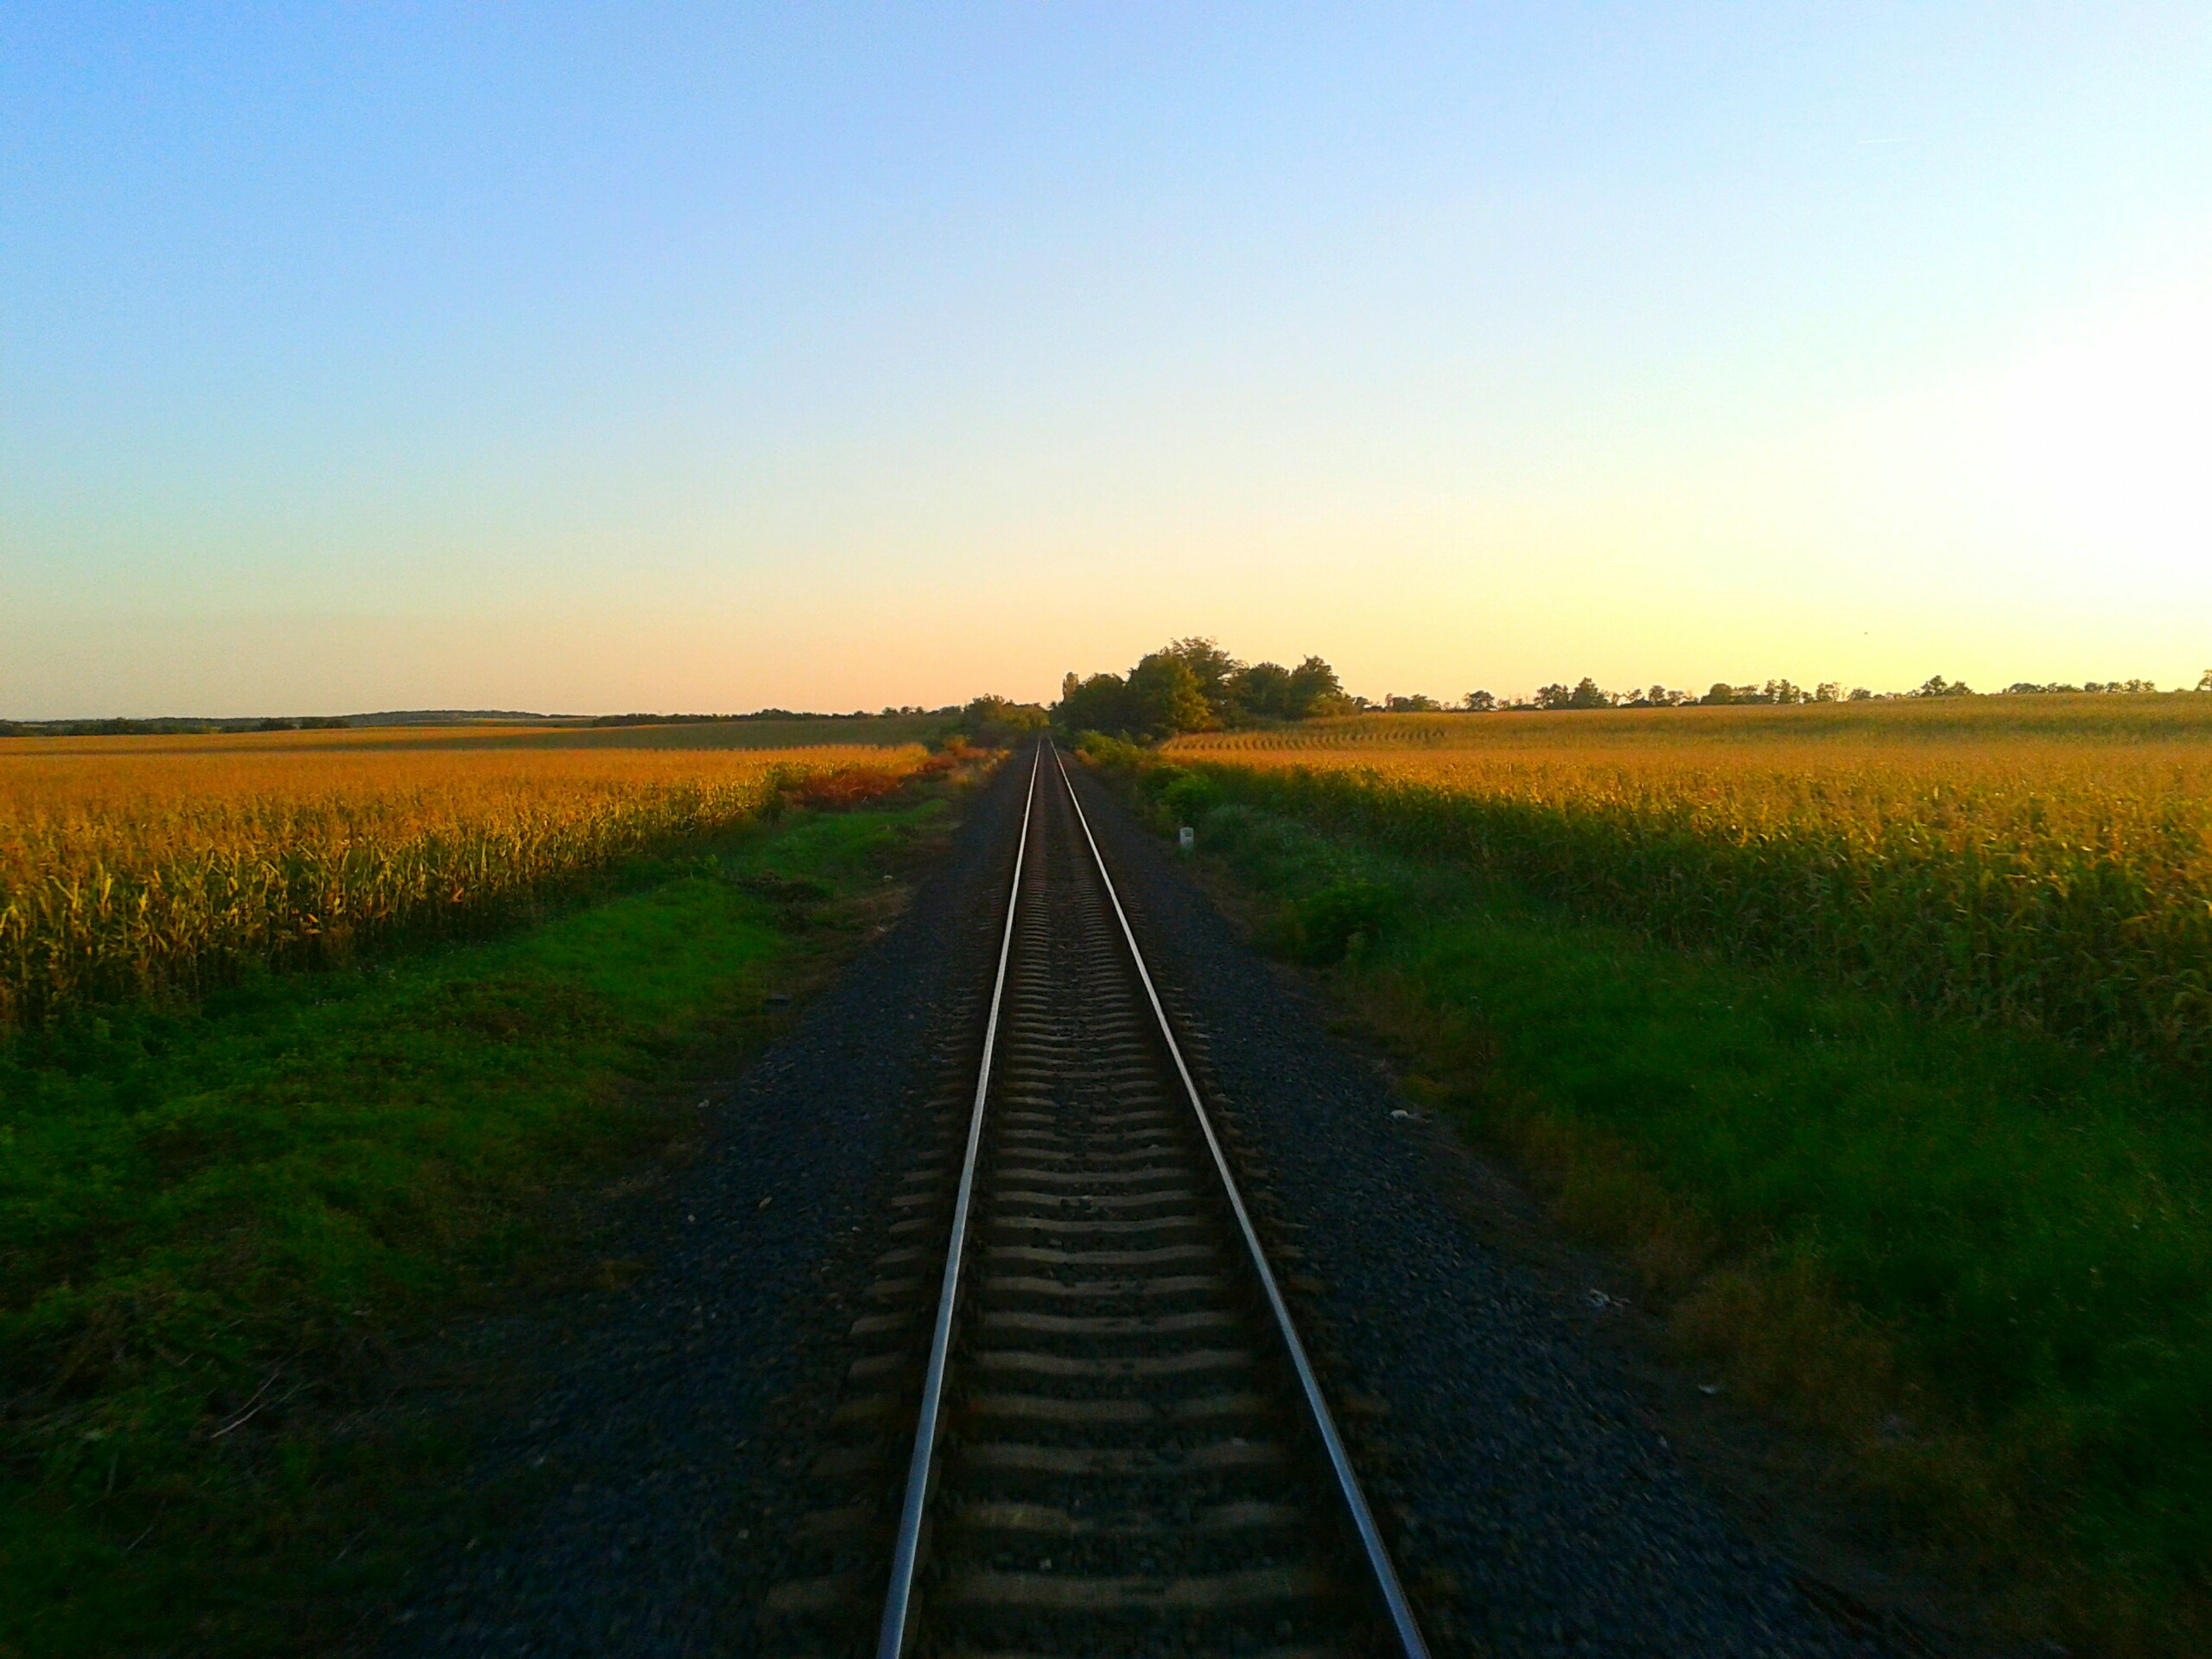 the way forward, transportation, vanishing point, diminishing perspective, landscape, railroad track, field, clear sky, tranquil scene, rural scene, rail transportation, tranquility, agriculture, nature, straight, grass, growth, sky, copy space, scenics